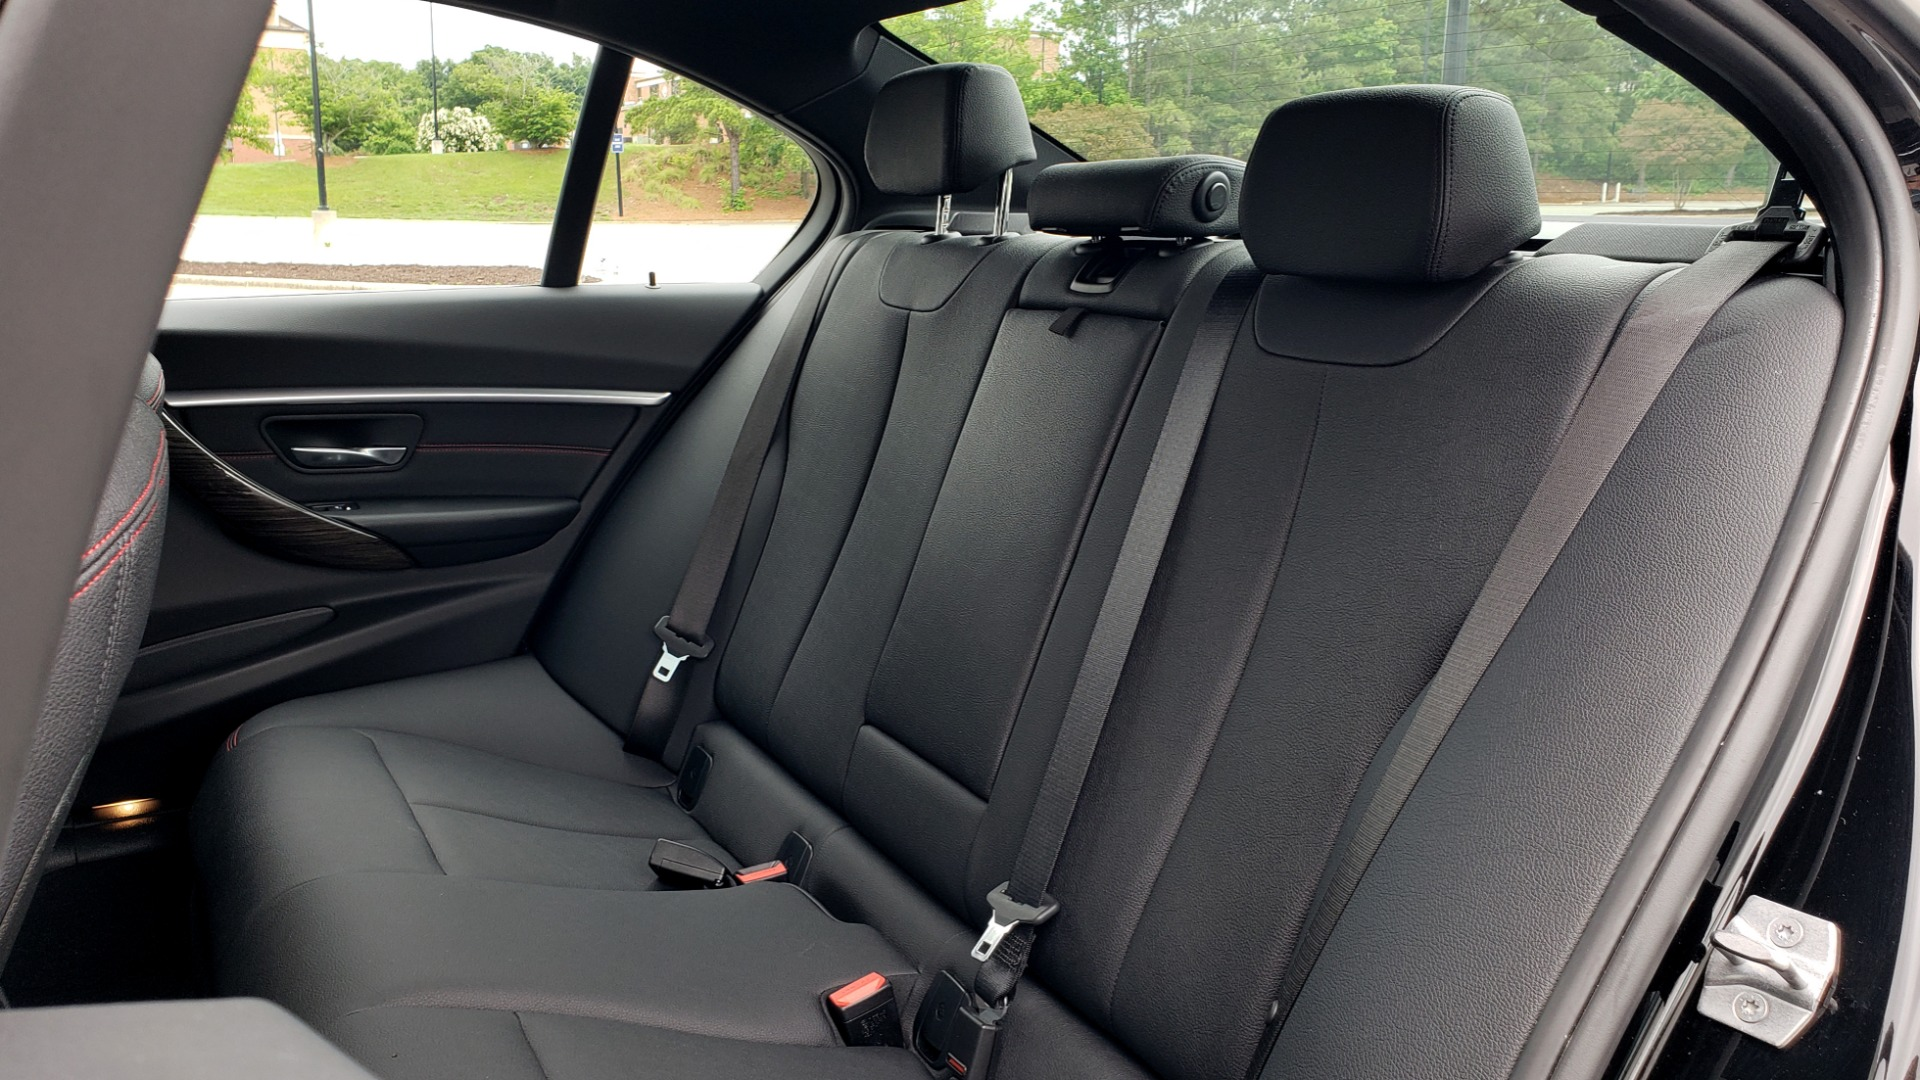 Used 2018 BMW 3 SERIES 330IXDRIVE / CONV PKG / NAV / SUNROOF / HTD STS / REARVIEW for sale $26,552 at Formula Imports in Charlotte NC 28227 63